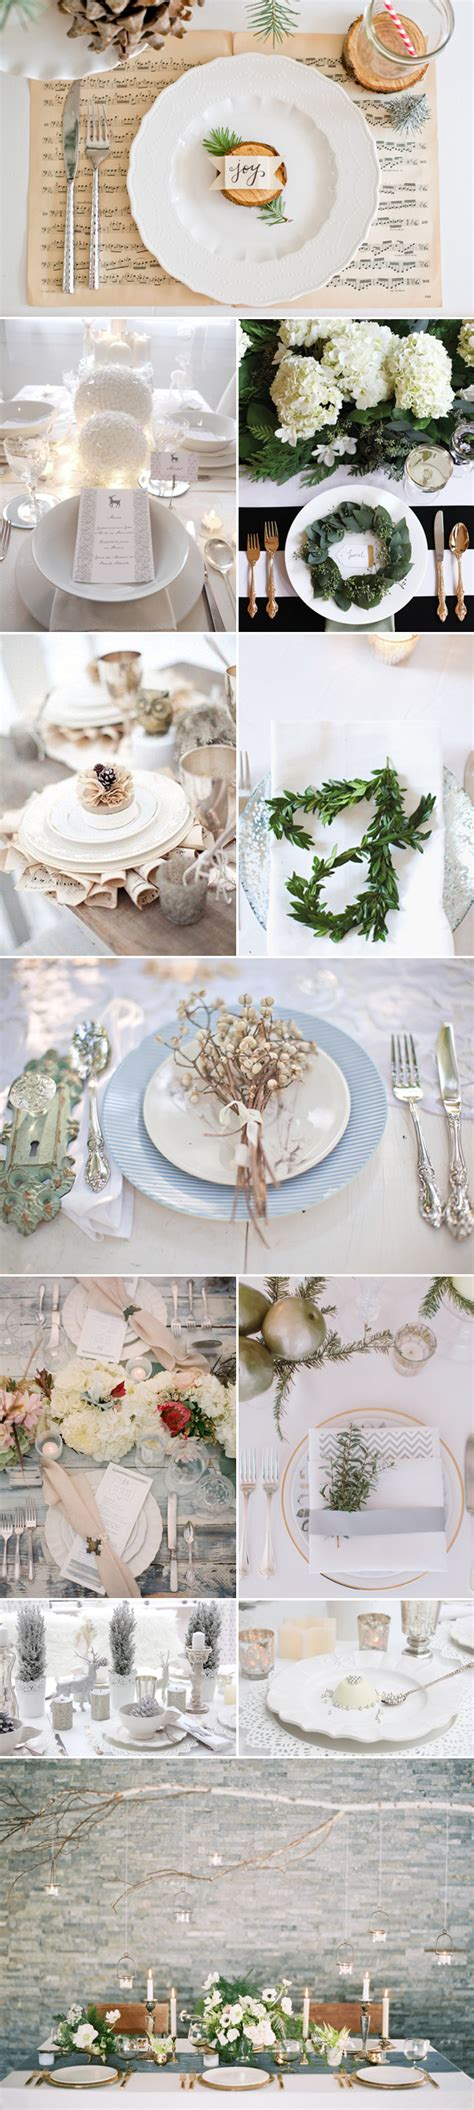 place setting ideas 20 winter wedding place setting ideas praise wedding